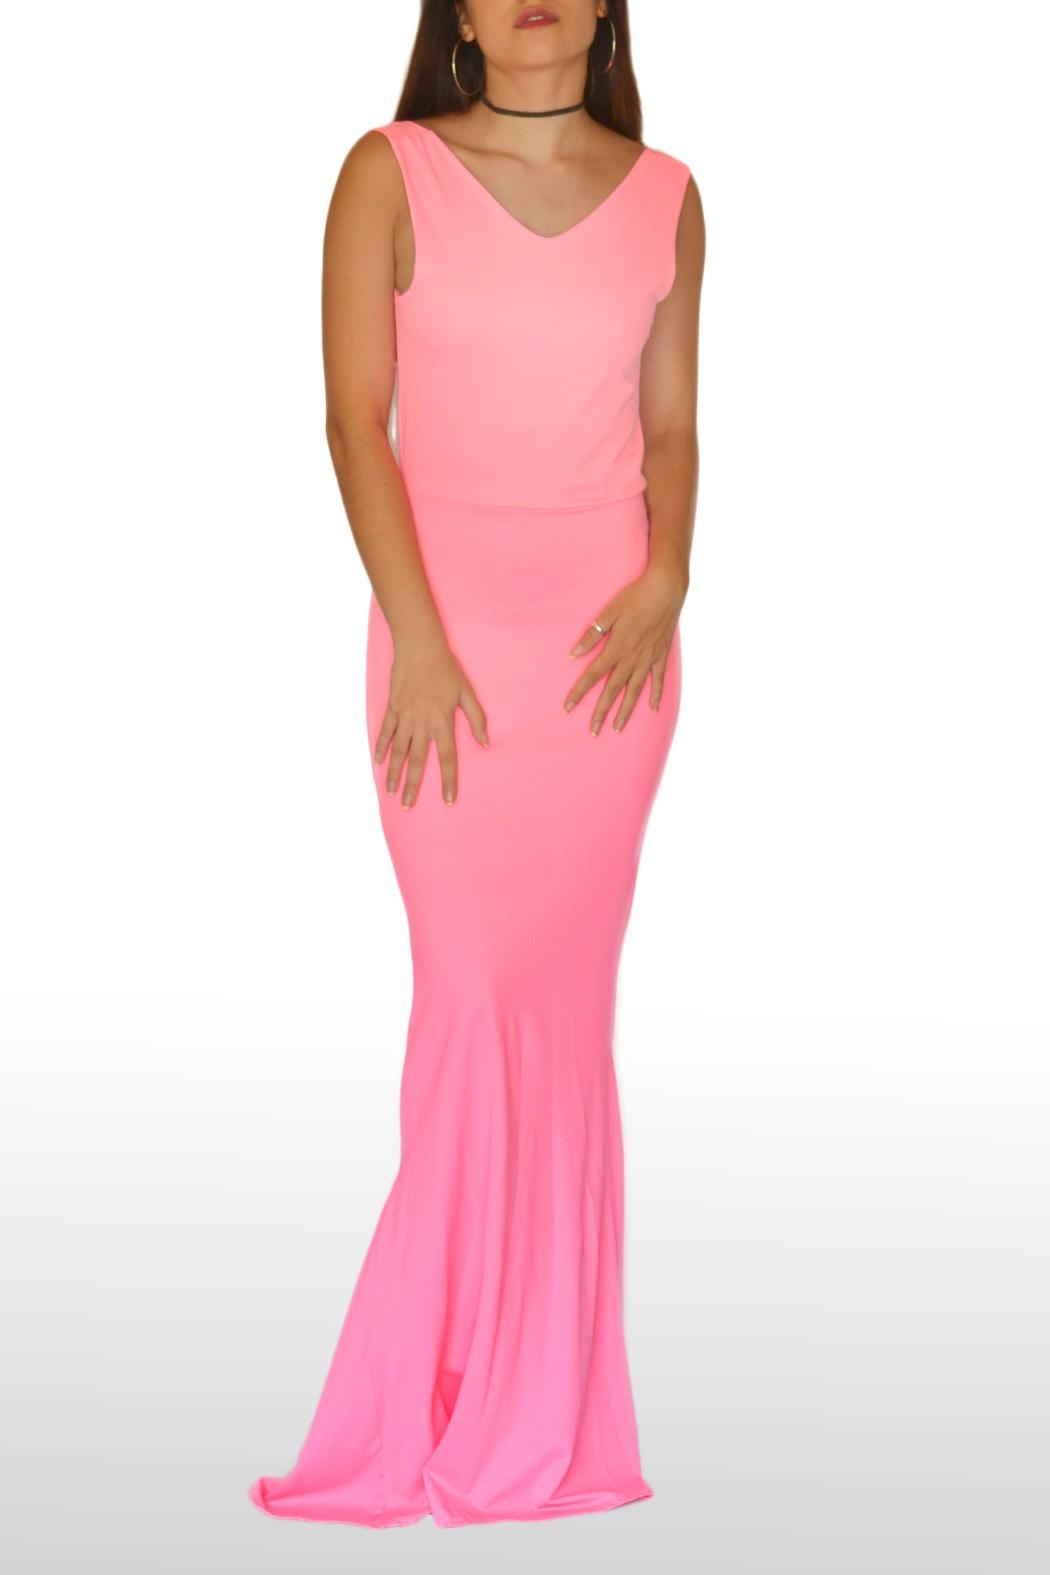 NUINABELOVE Pink Mermaid Dress - Front Cropped Image